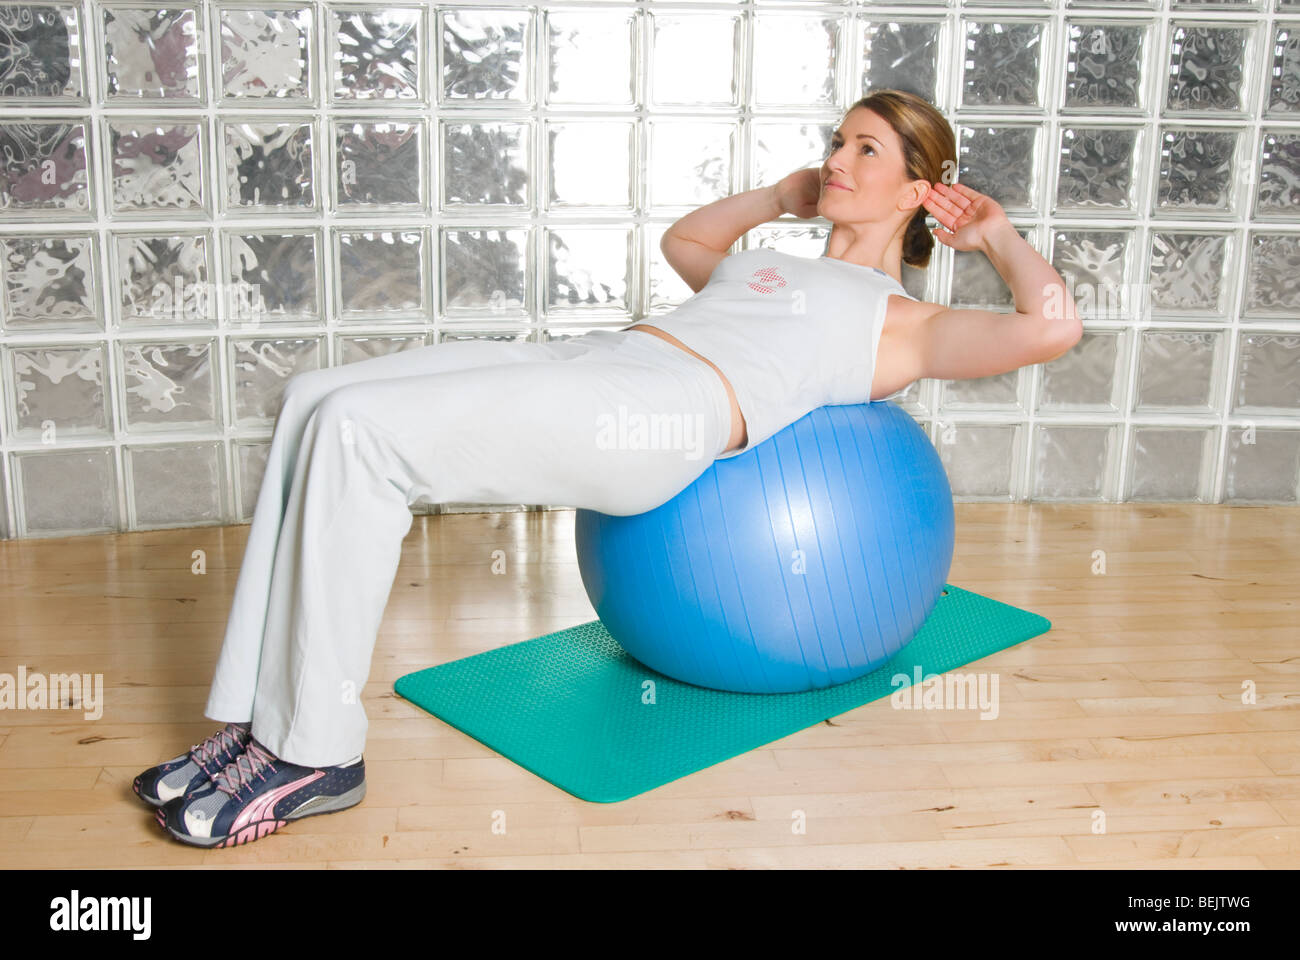 Woman using exercise ball to train / work out in a gymnasium - Stock Image